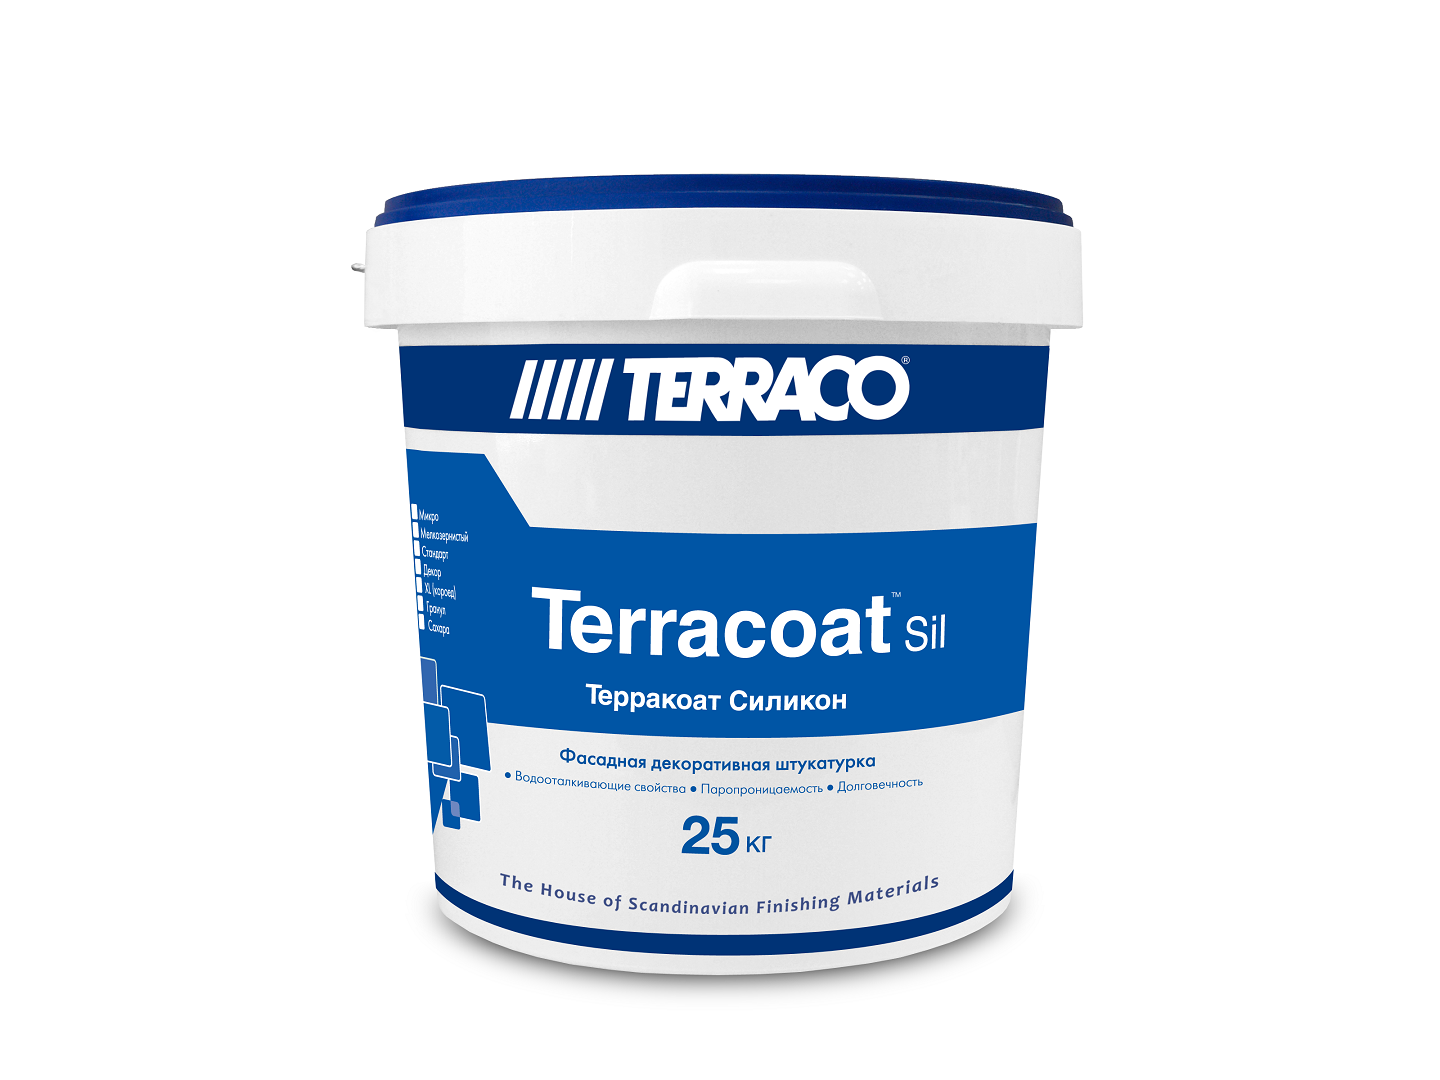 Terracoat Sil XL (Терракоат Силикон XL) 25 кг